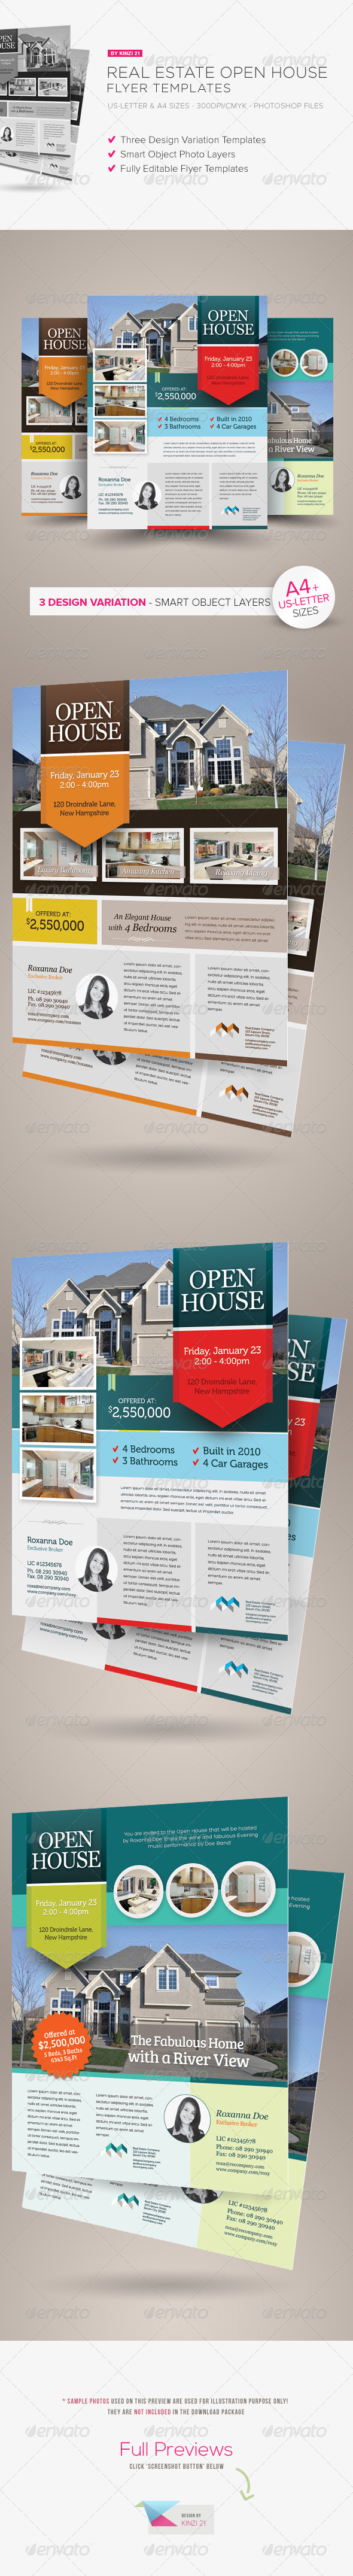 Real Estate Open House Flyers - Corporate Flyers